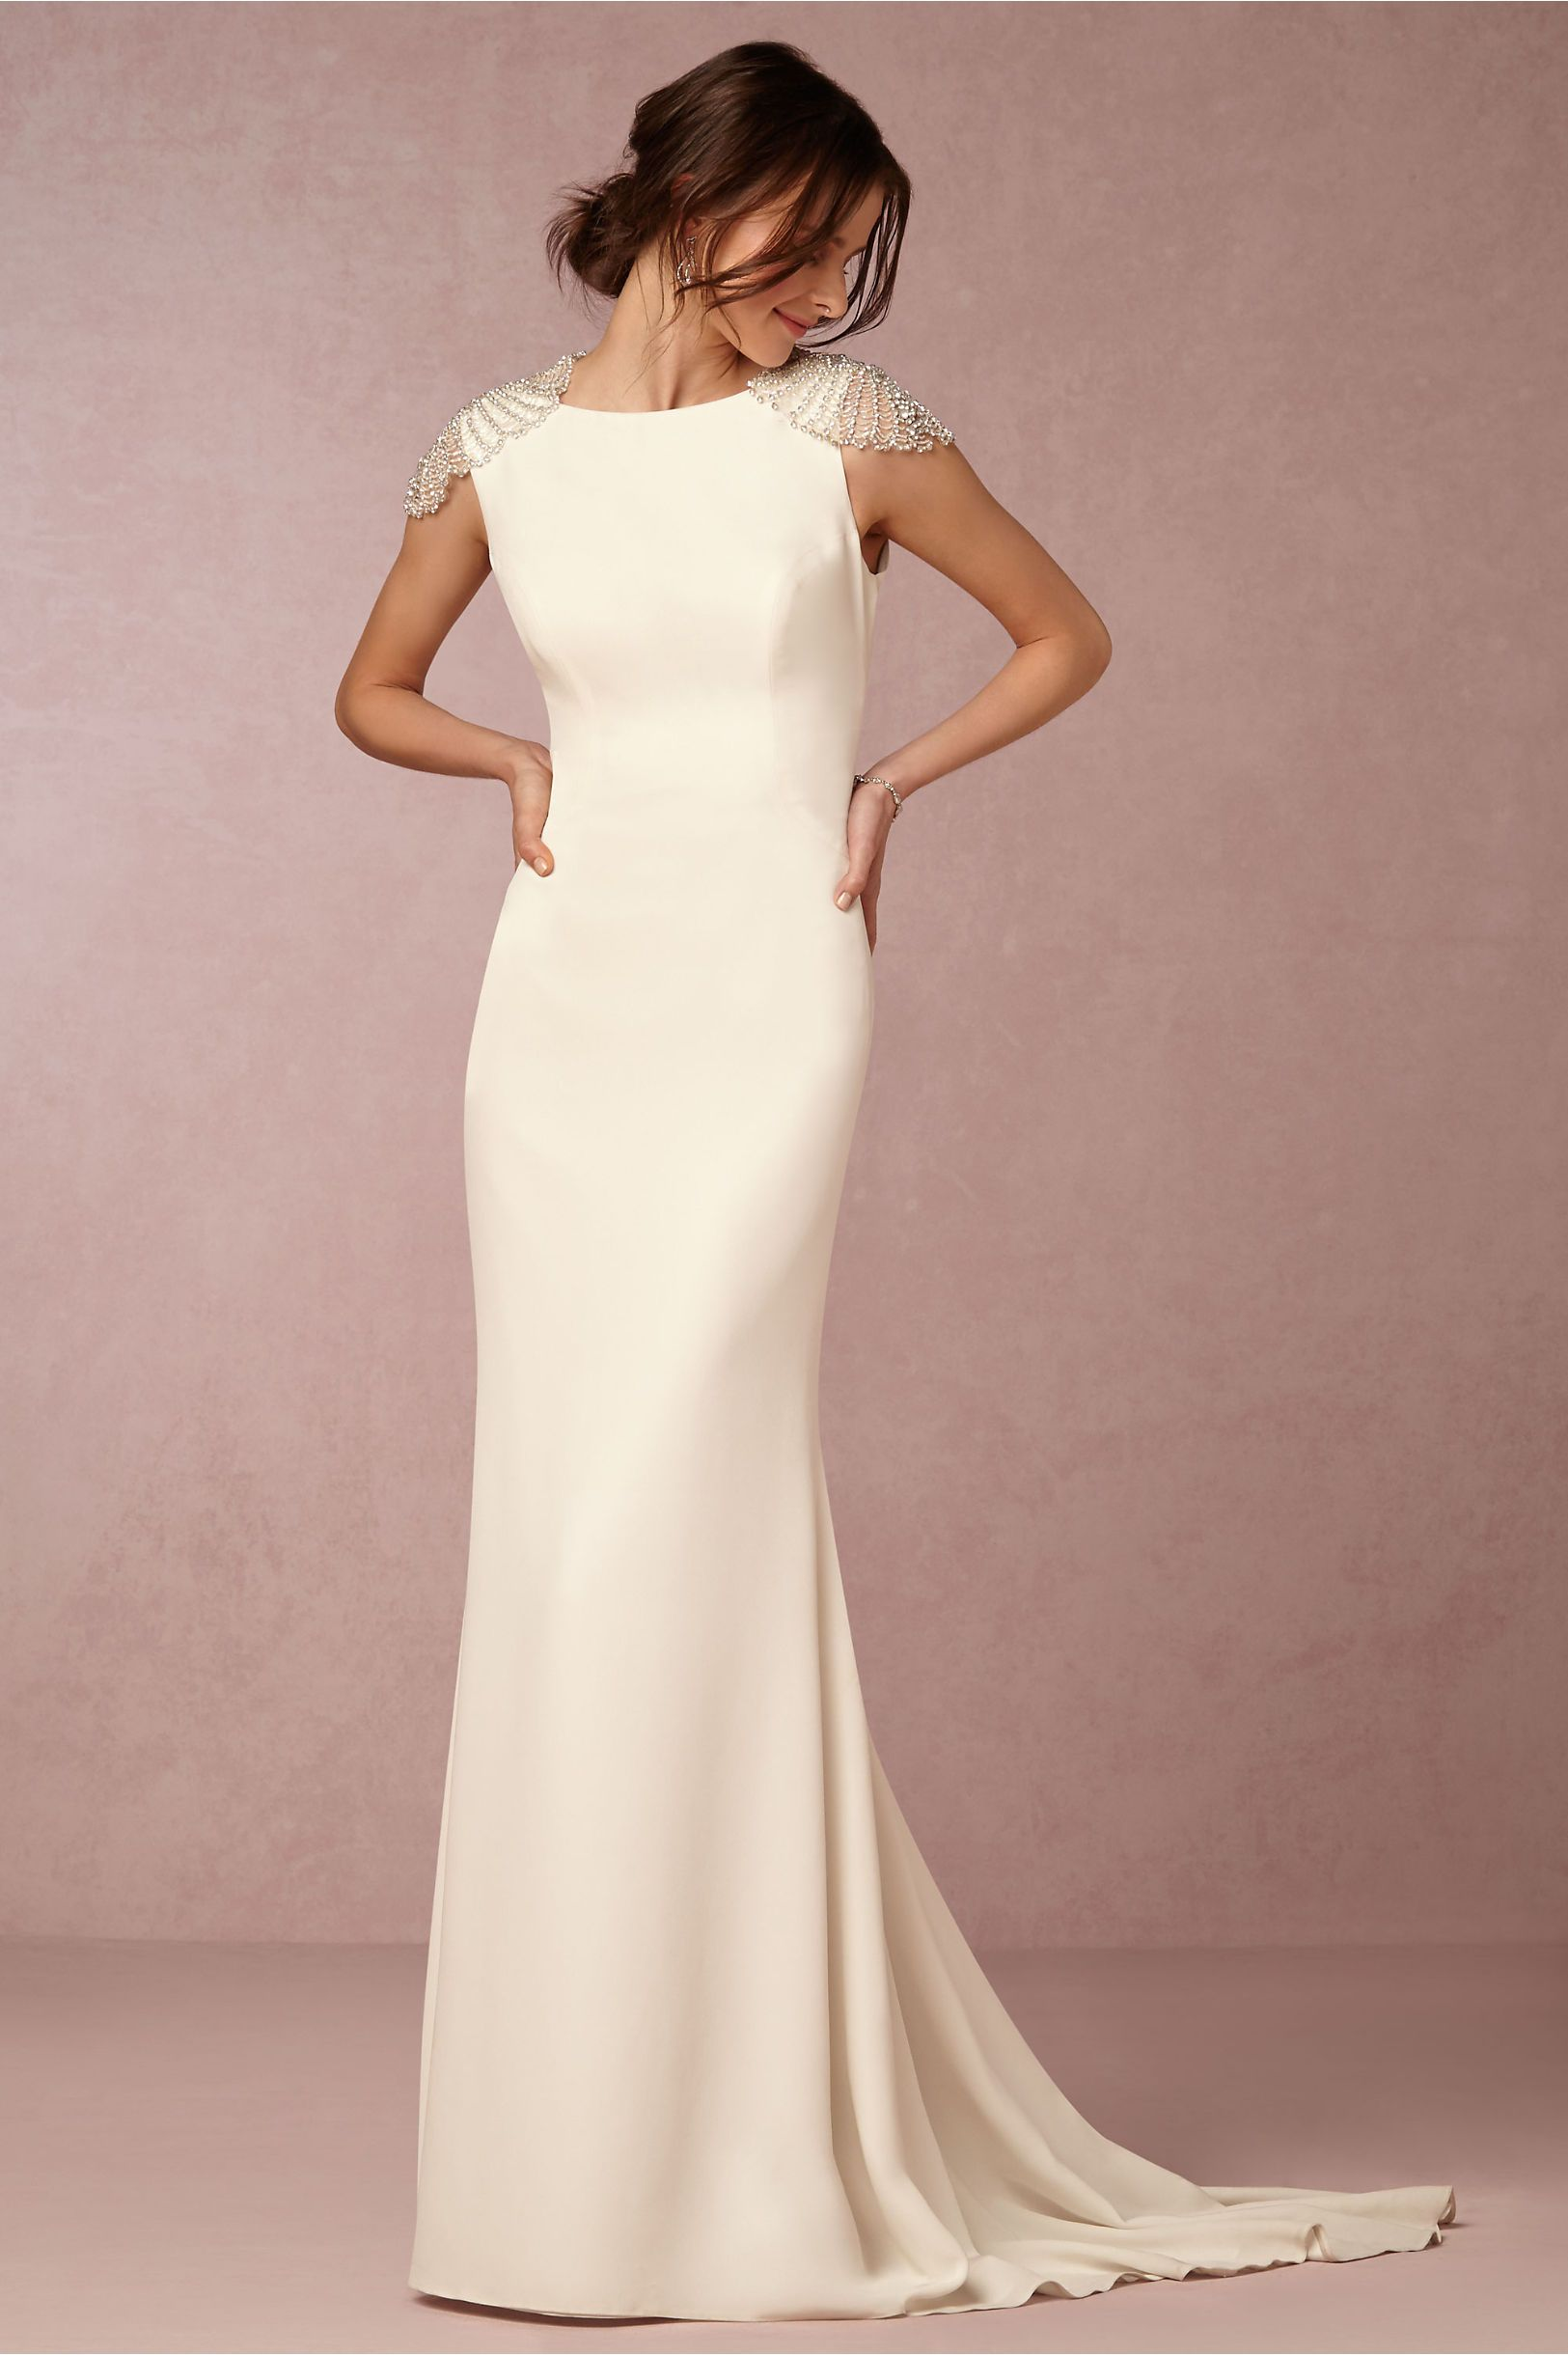 Dylan Gorgeous Sophisticated Cream Colored Crepe Column Sheath Wedding Gown Featuring A Bateau Neckline Cap Sleeves Incredible Detailed Feature